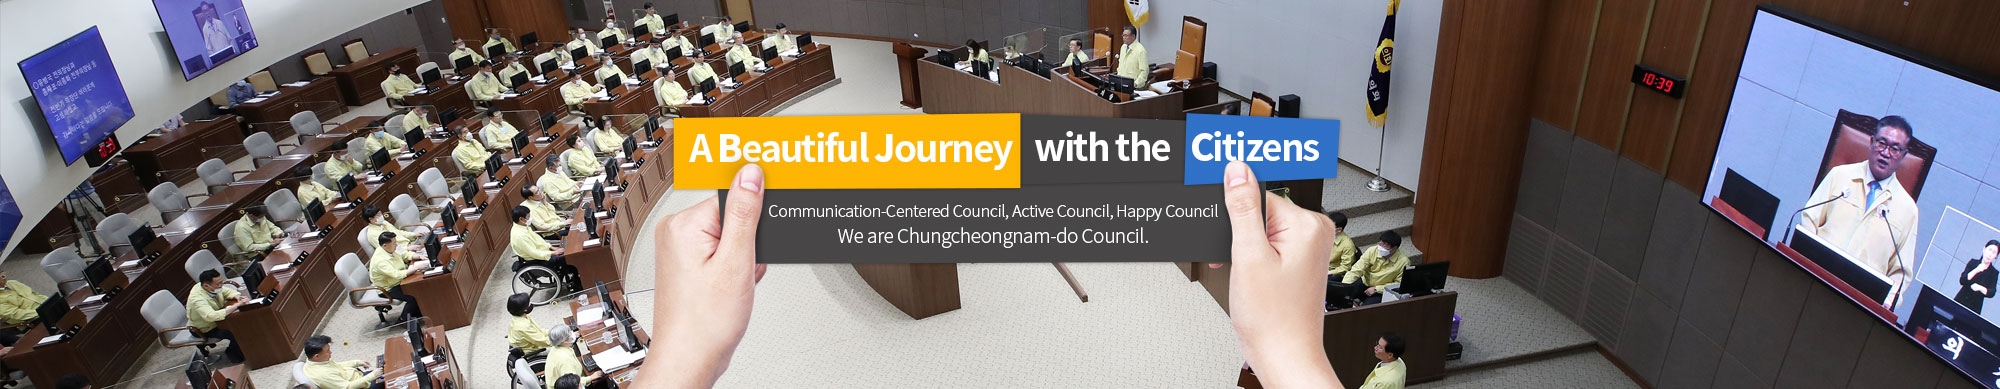 A Beautiful Journey  with the   Citizens Open Council, empathetic Council, Responsible Council We are Chungcheongnam-do Council.